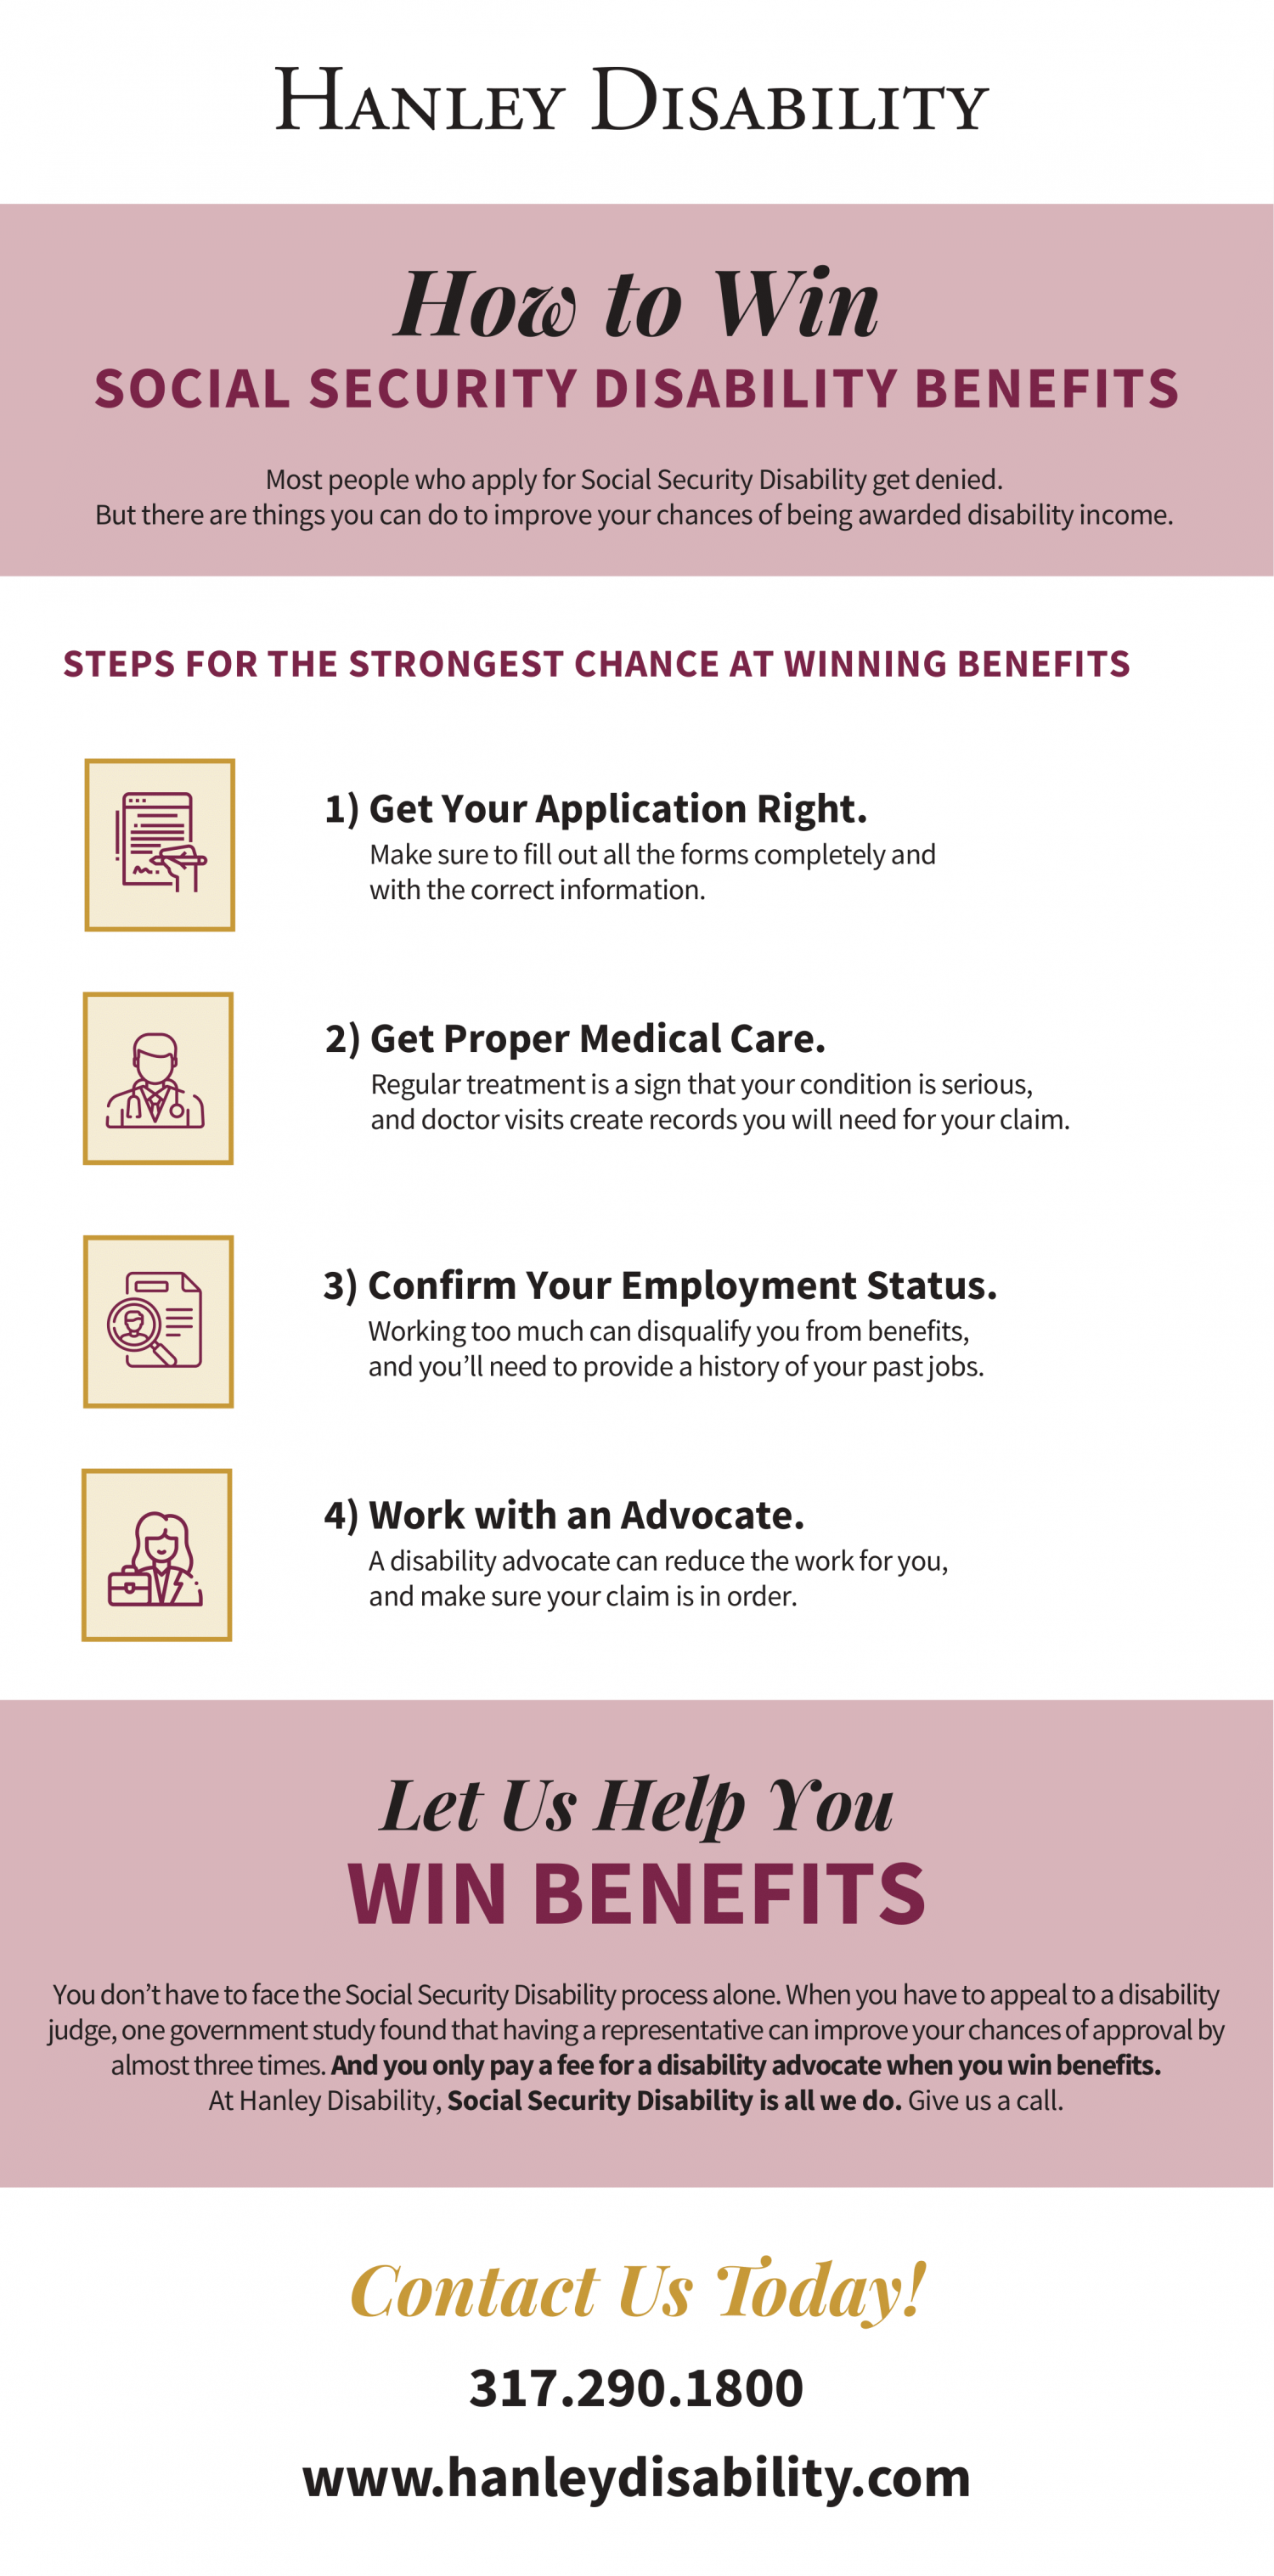 How to Win Social Security Disability Benefits Infographic